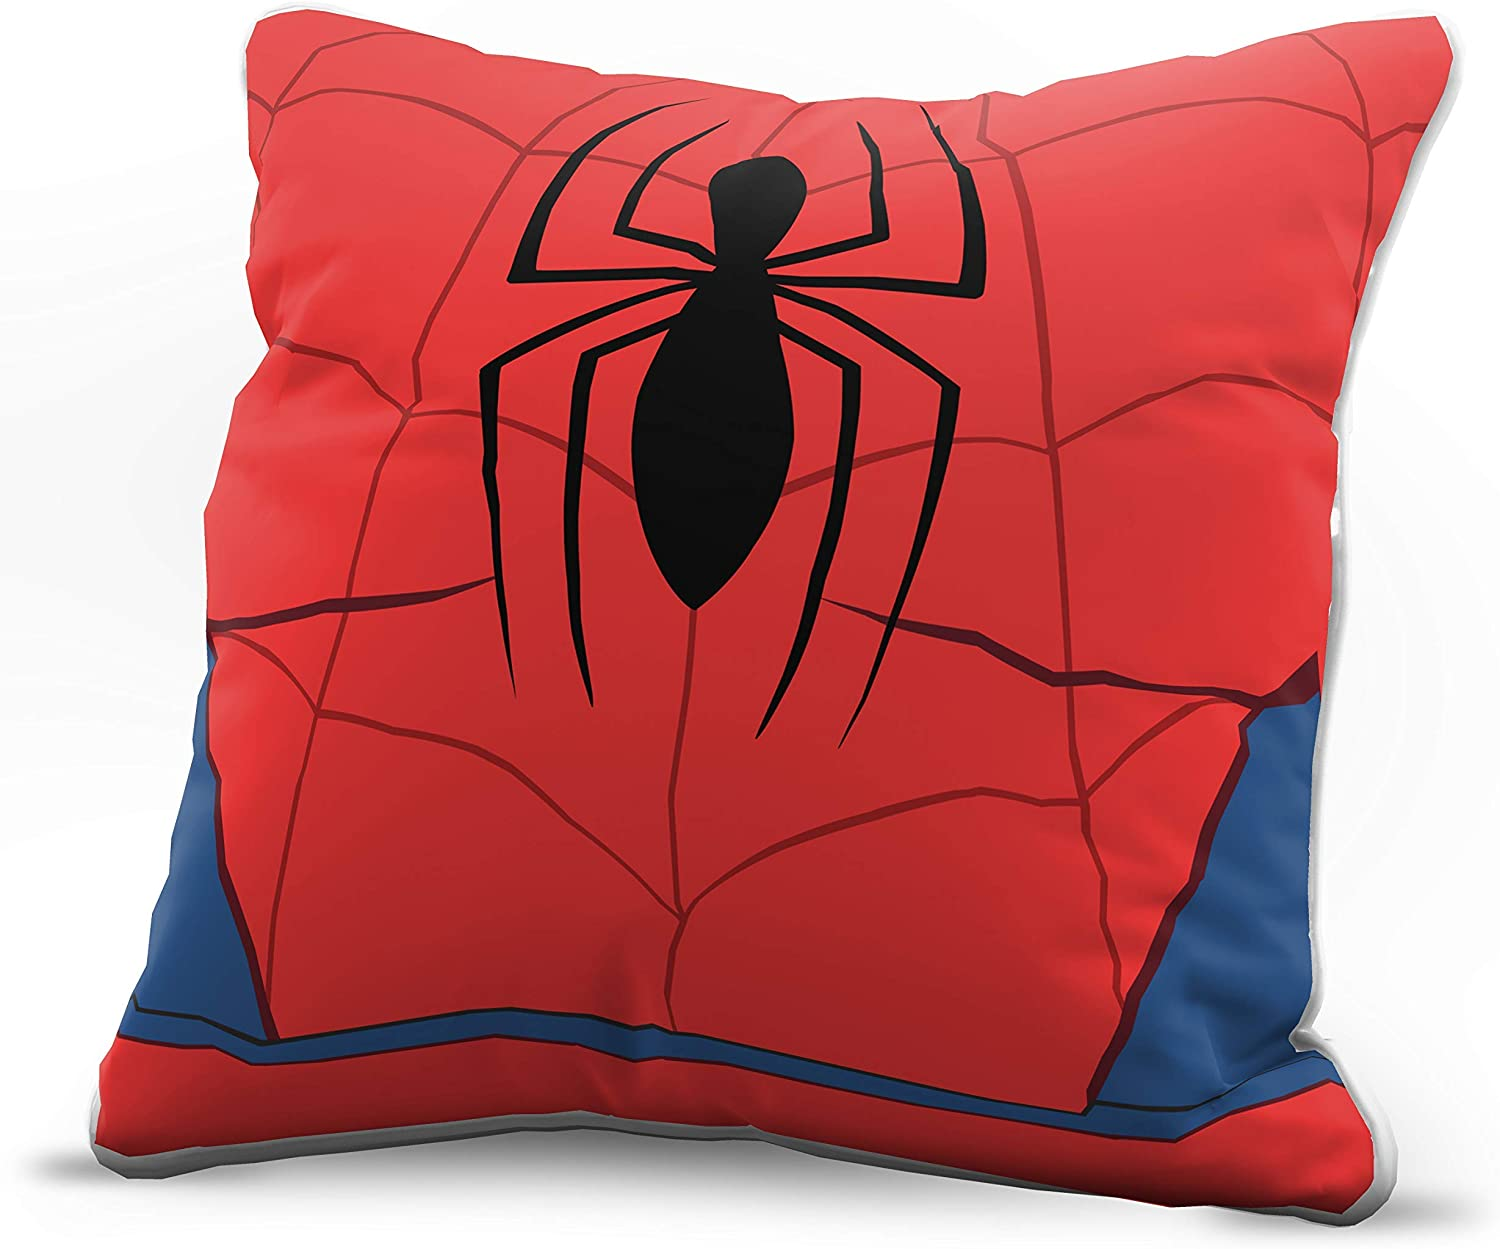 Jay Franco Marvel Decorative Pillow Cover Spiderman Bust : Home & Kitchen